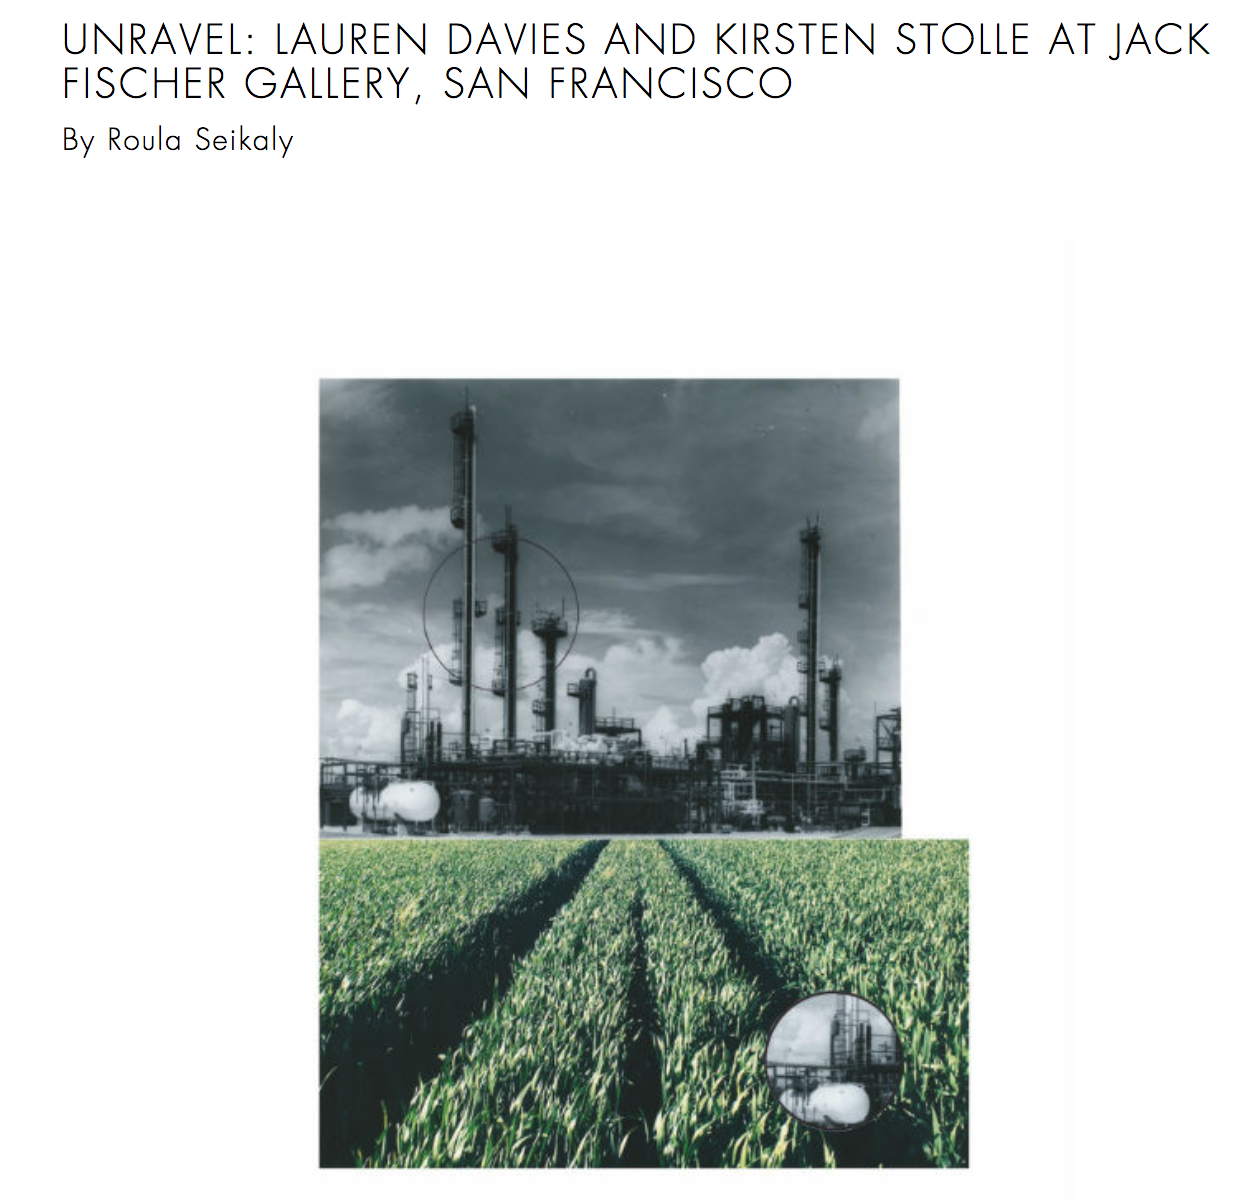 Unravel  paired photo-based work by Lauren Davies and Kirsten Stolle. Contextualized by our precarious political circumstances, the installation is a grim but engrossing account of American economic decline and reckless industrial arrogance. Photograph Mag  full article .